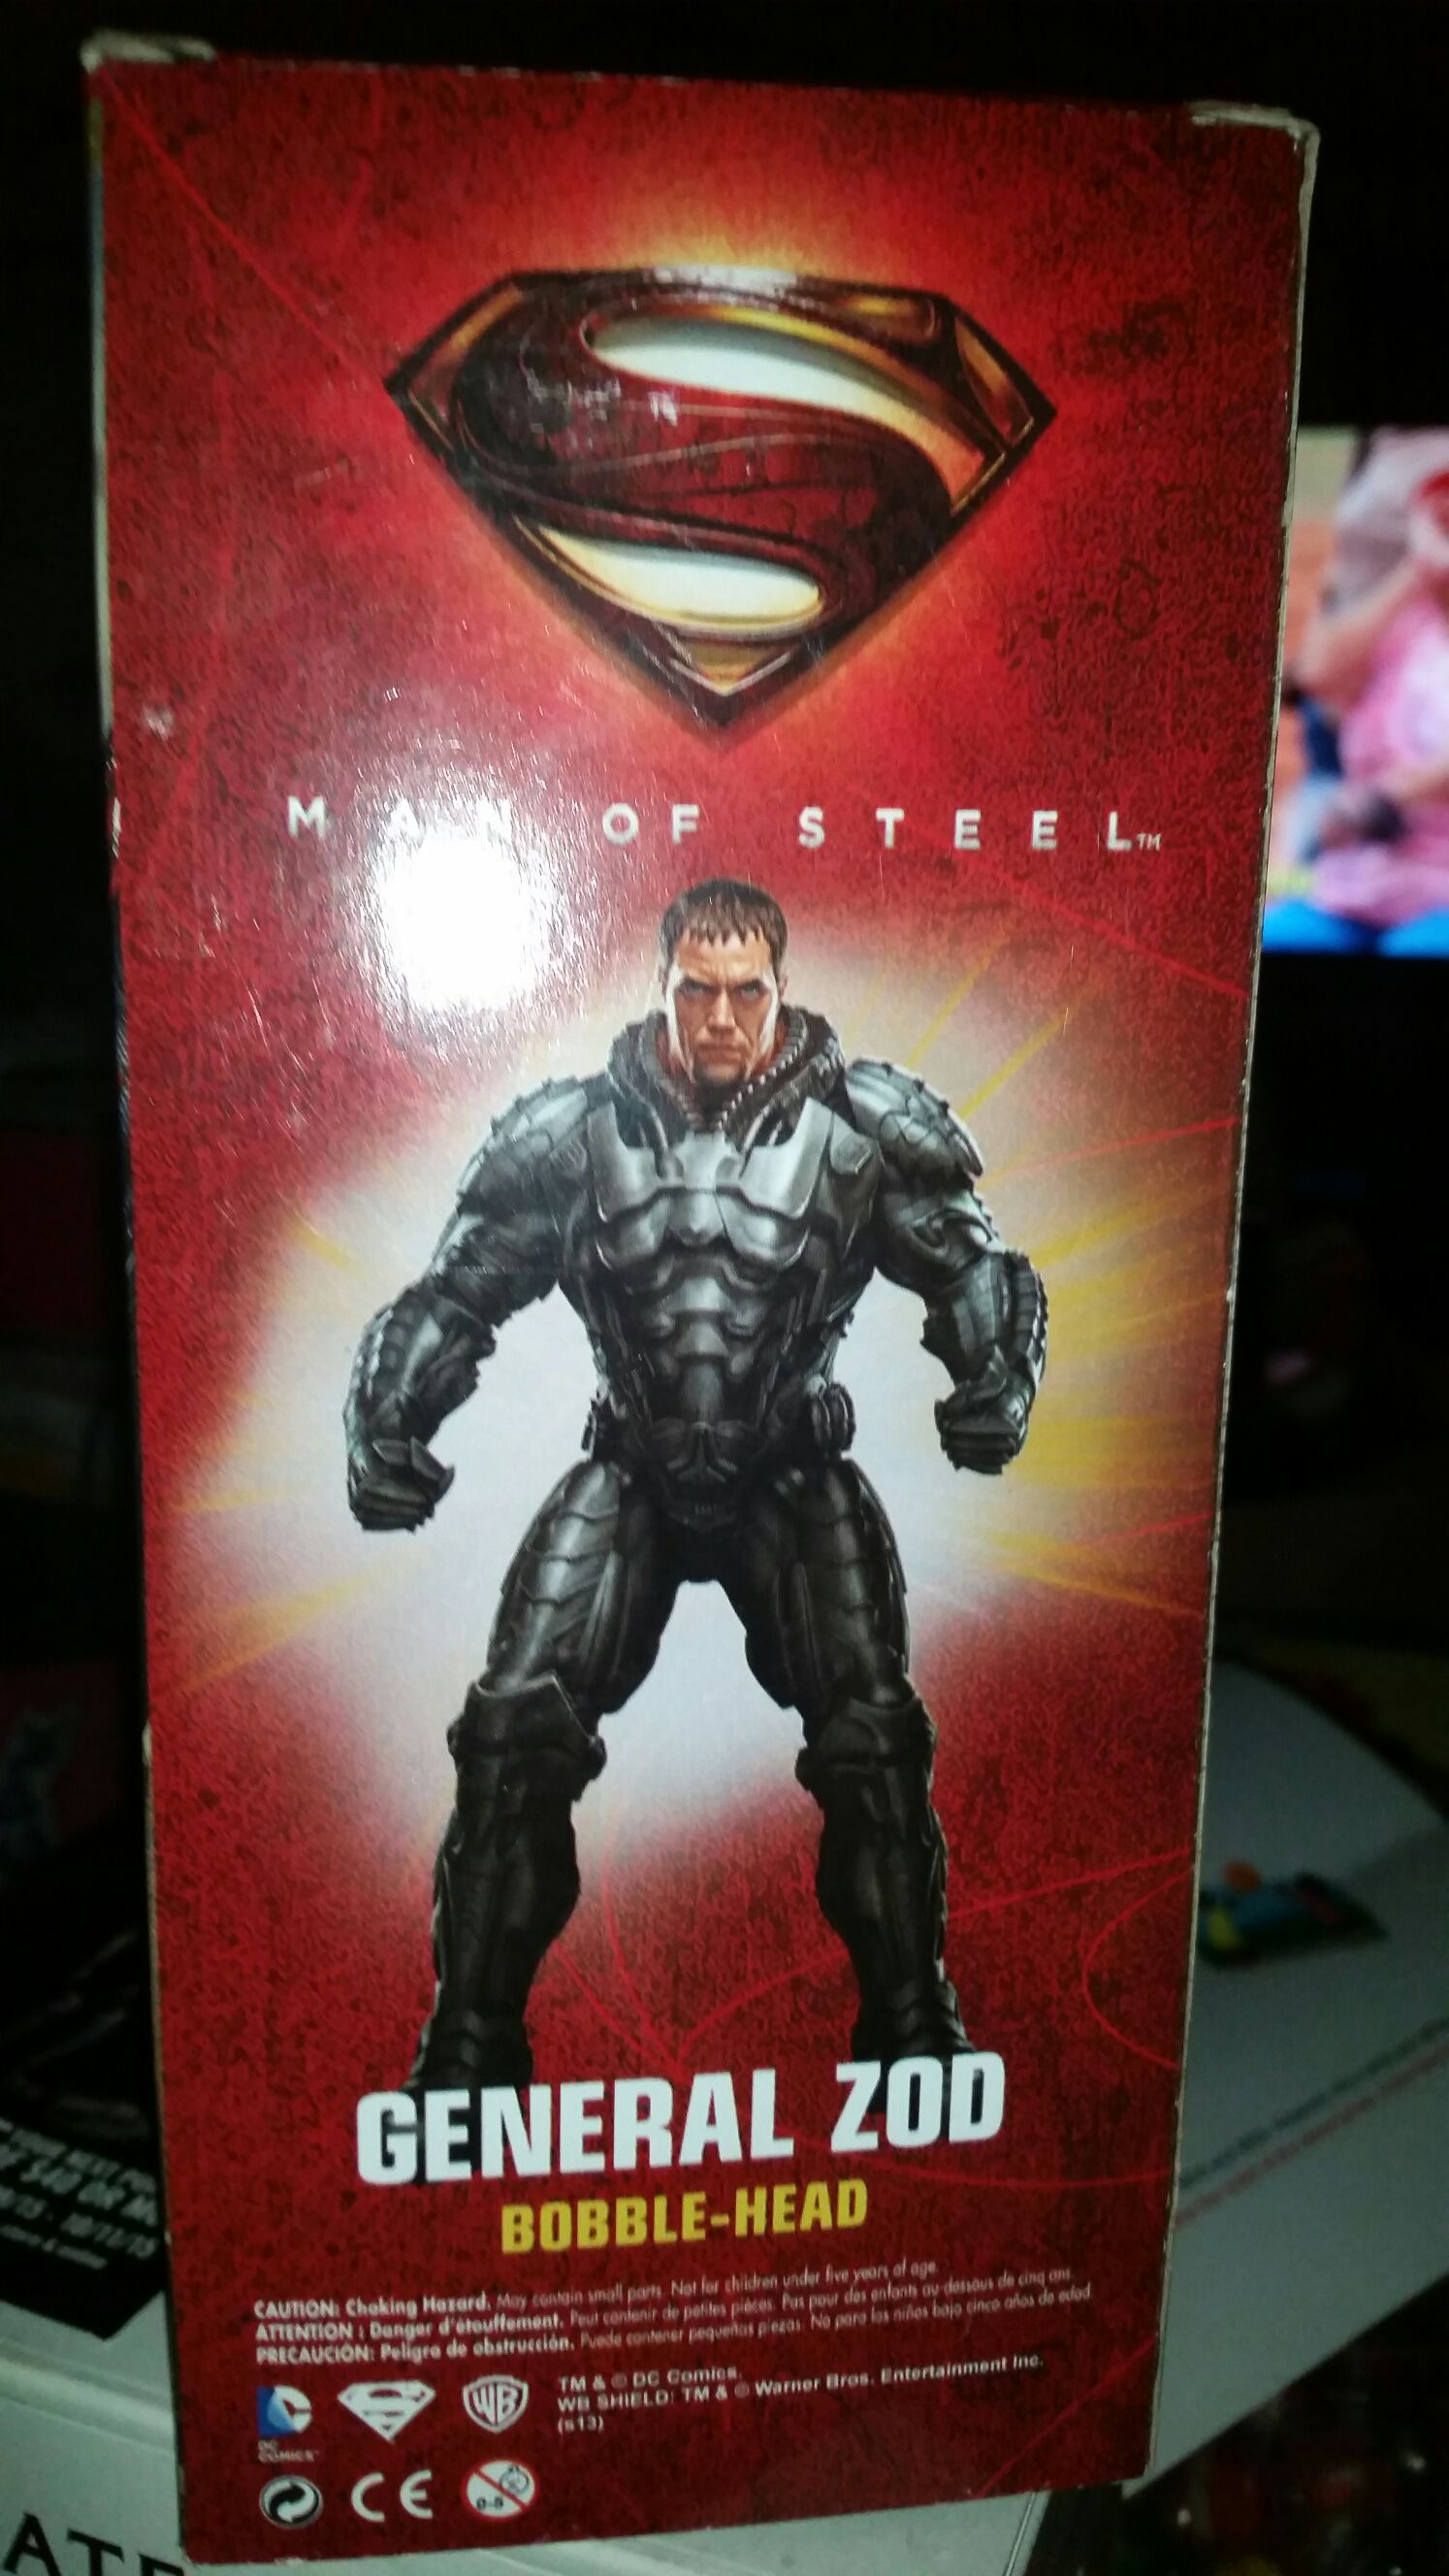 General Zod Bobblehead - Super Heros back image (back cover, second image)